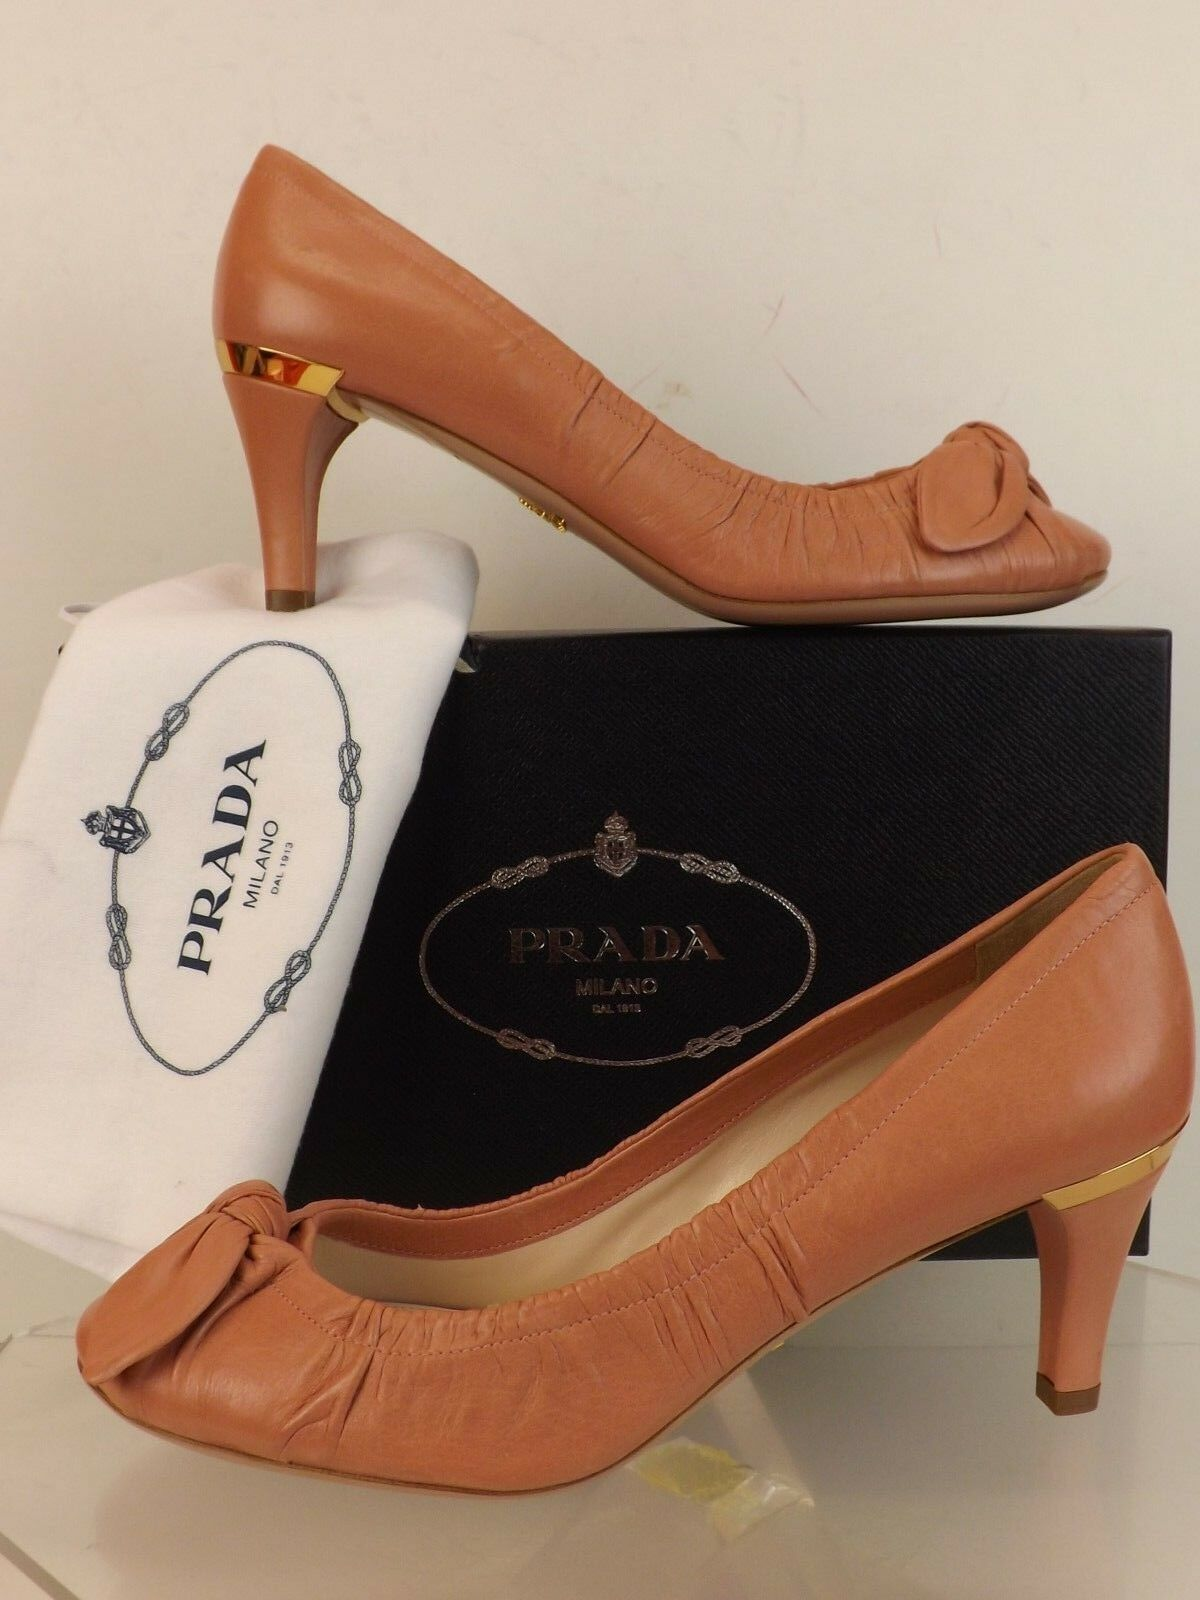 NIB PRADA PALE PINK WASHED LEATHER BOW MID HEEL gold PLATE LOGO CLASSIC PUMPS 40